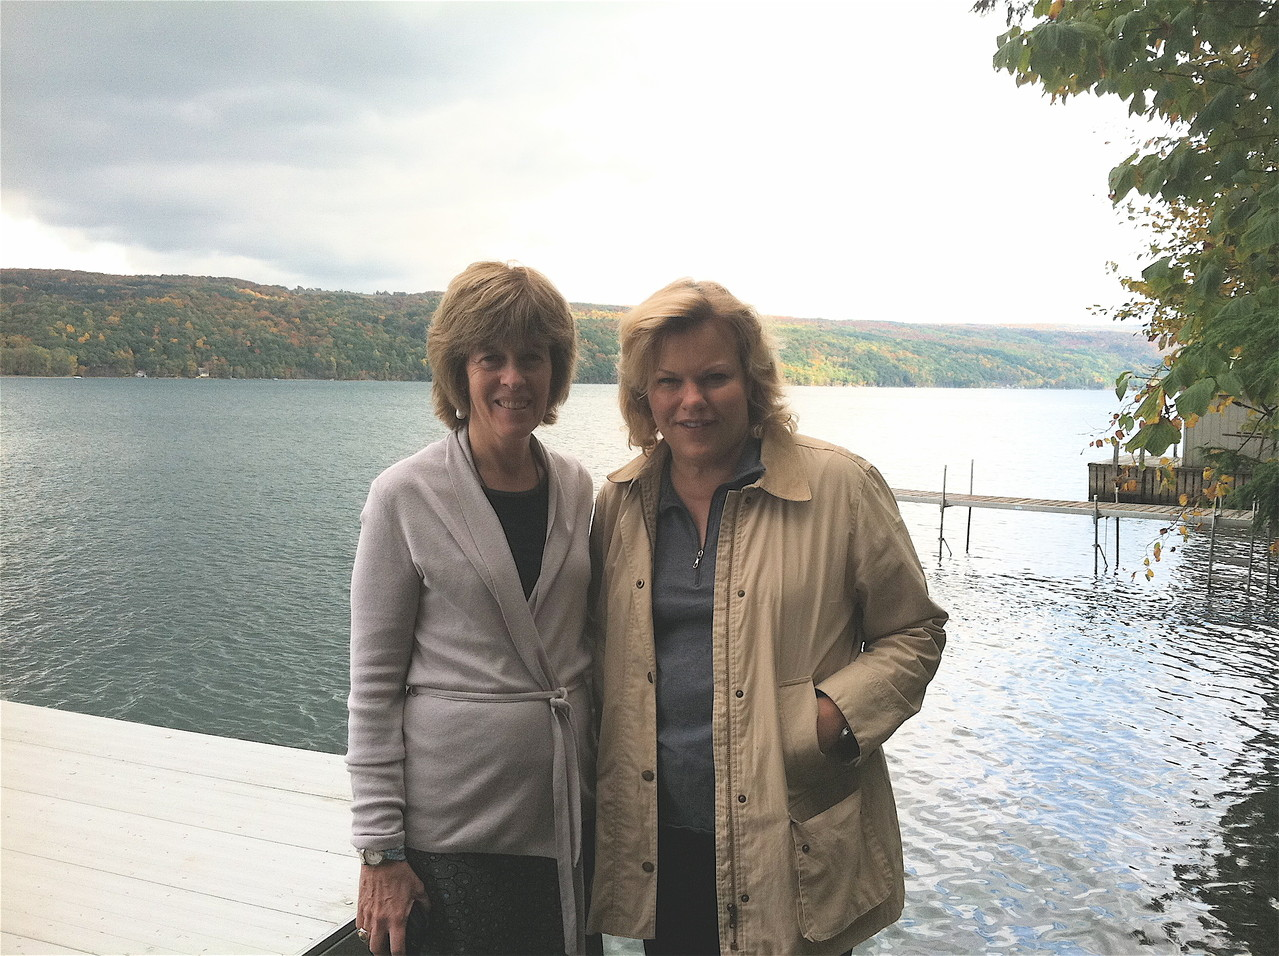 Nancy Hynes & Celeste, Oct. 6, 2012, Skaneateles Lake